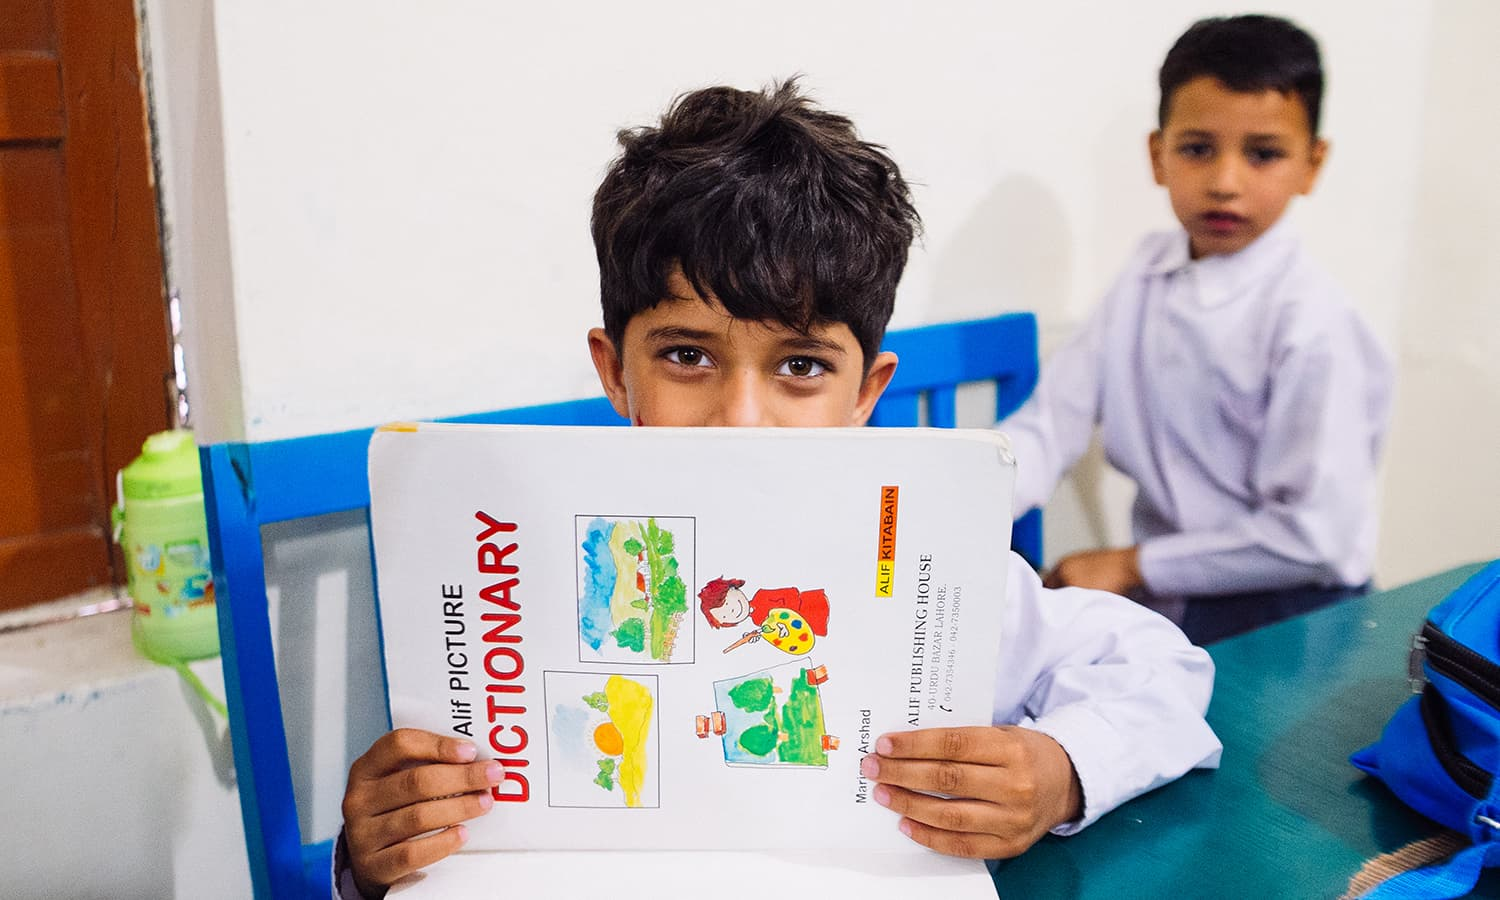 A boy peers over a textbook.